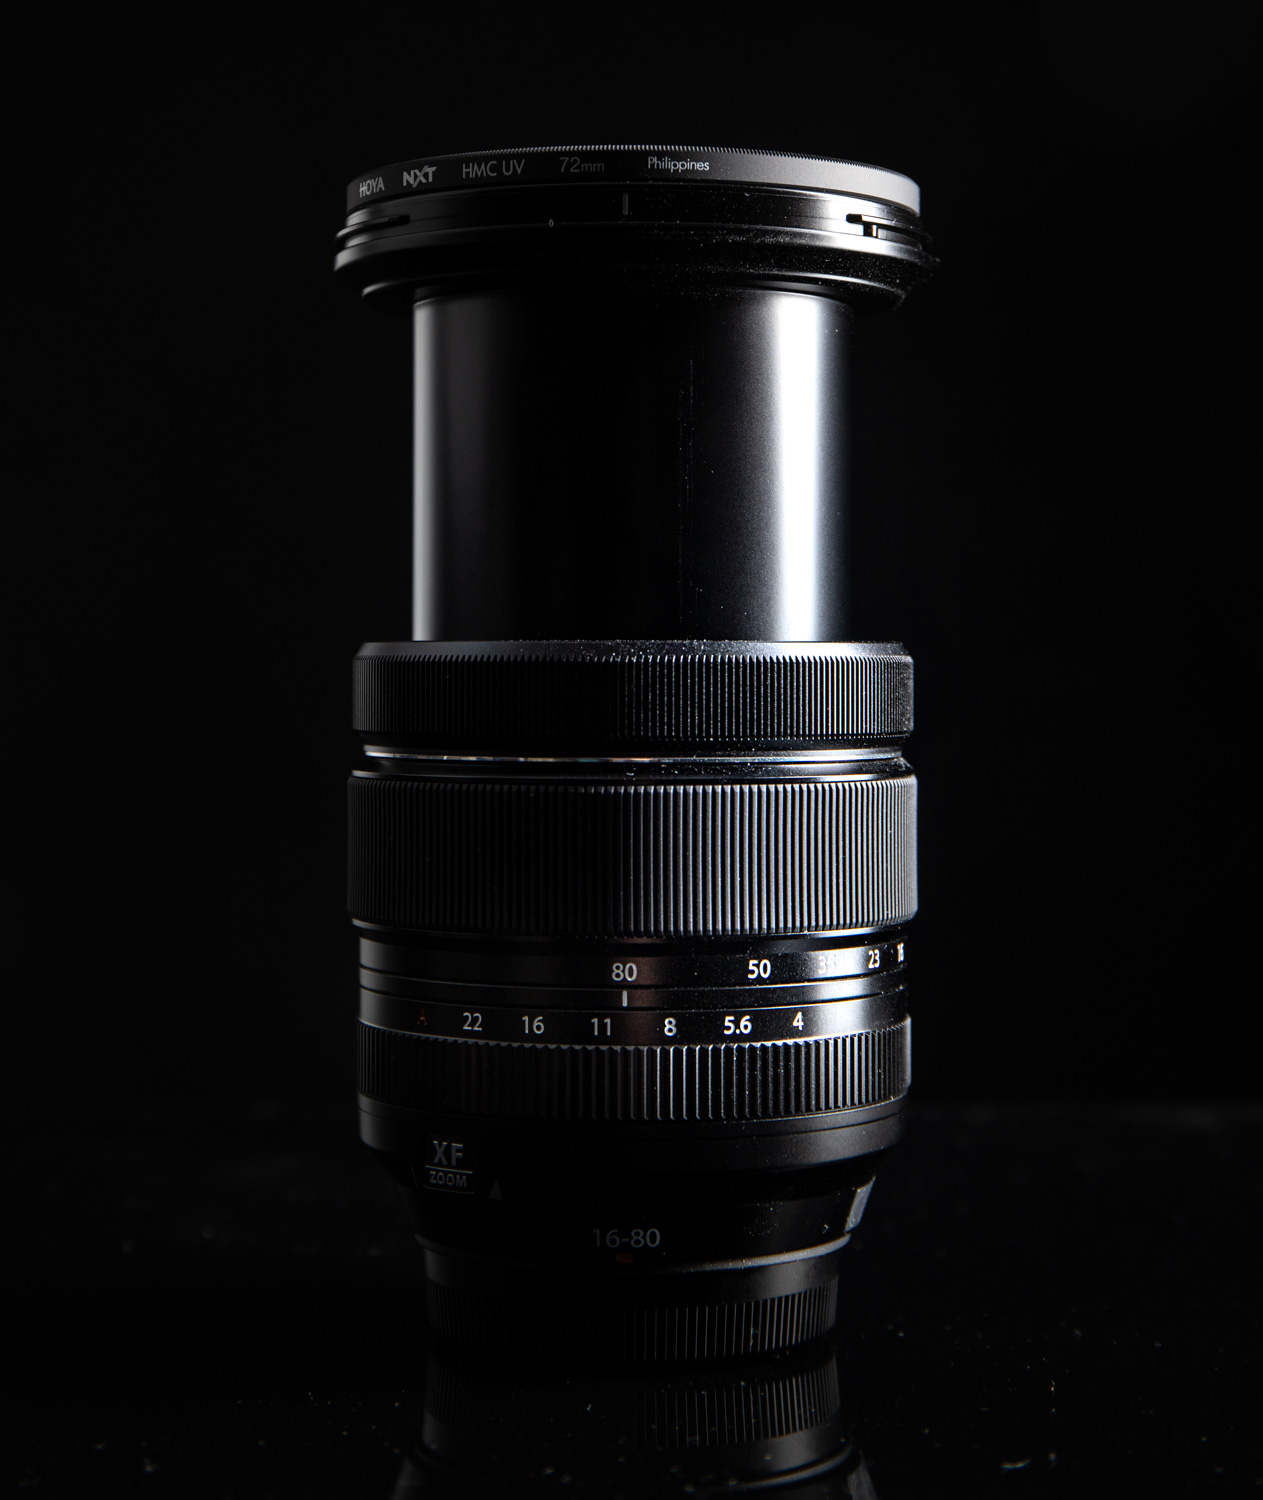 Fujifilm 16-80mm f/4 review